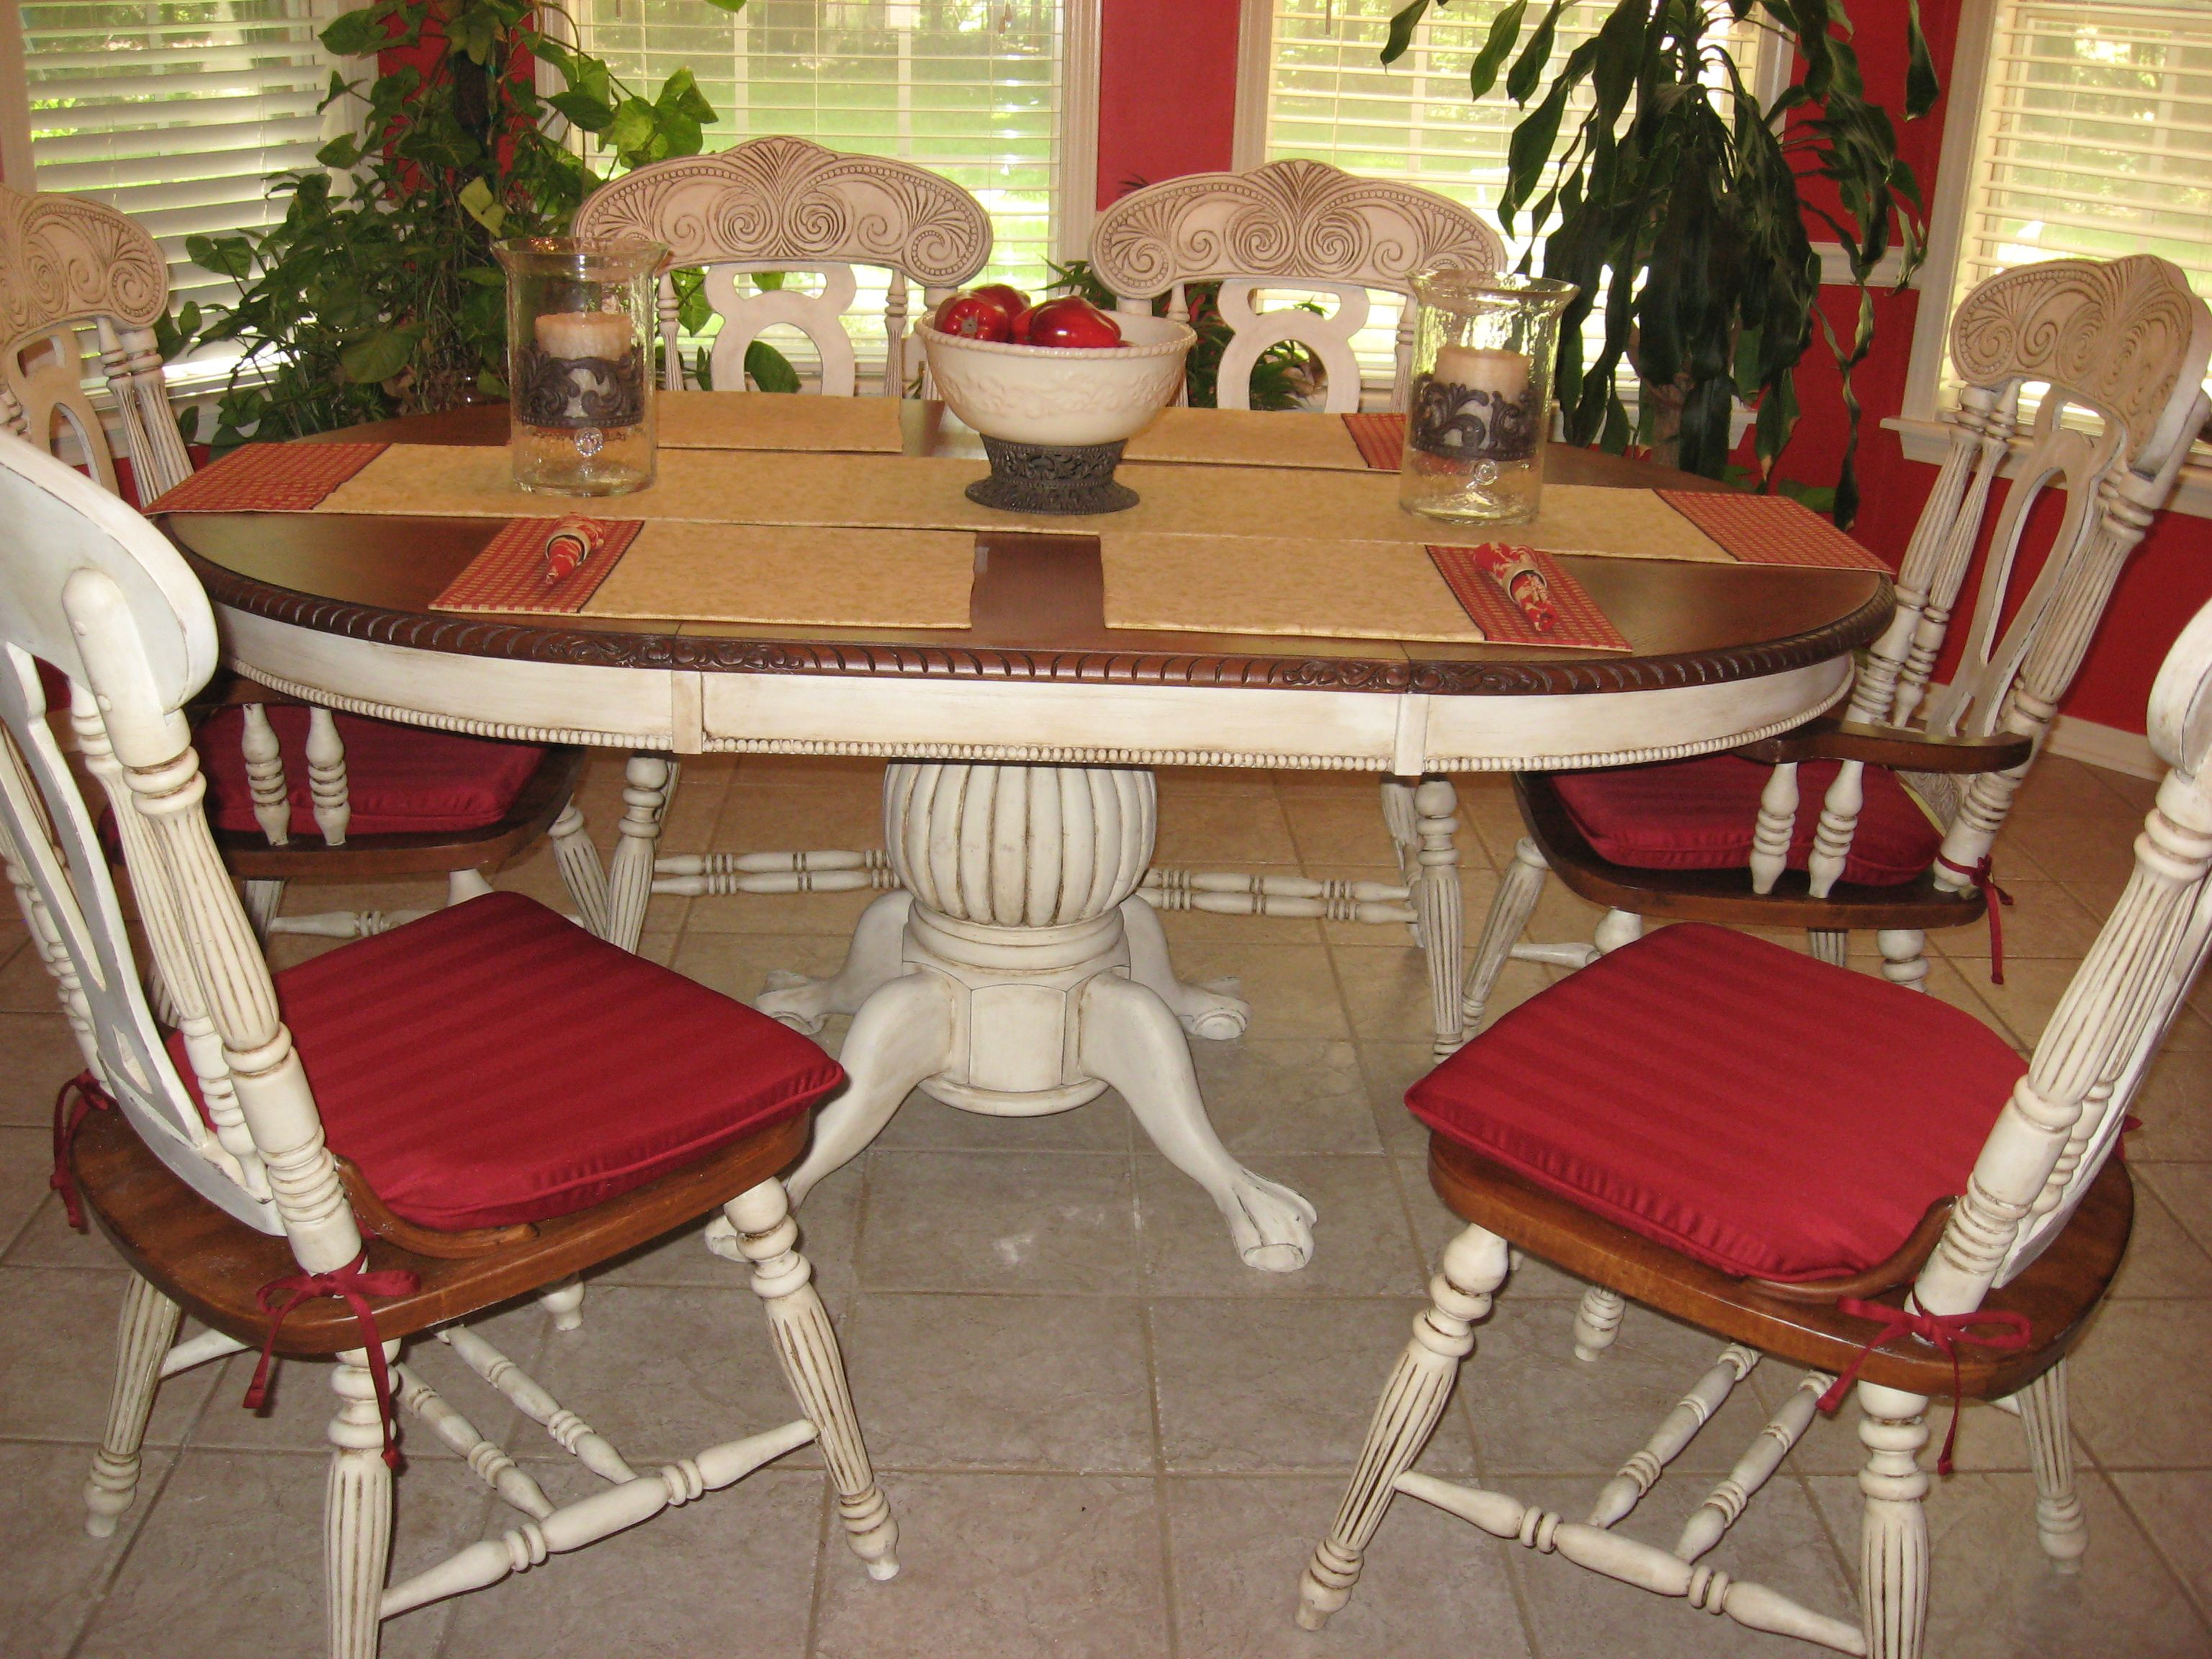 Distressed my dining room table and chairs with Annie Sloan pure ...